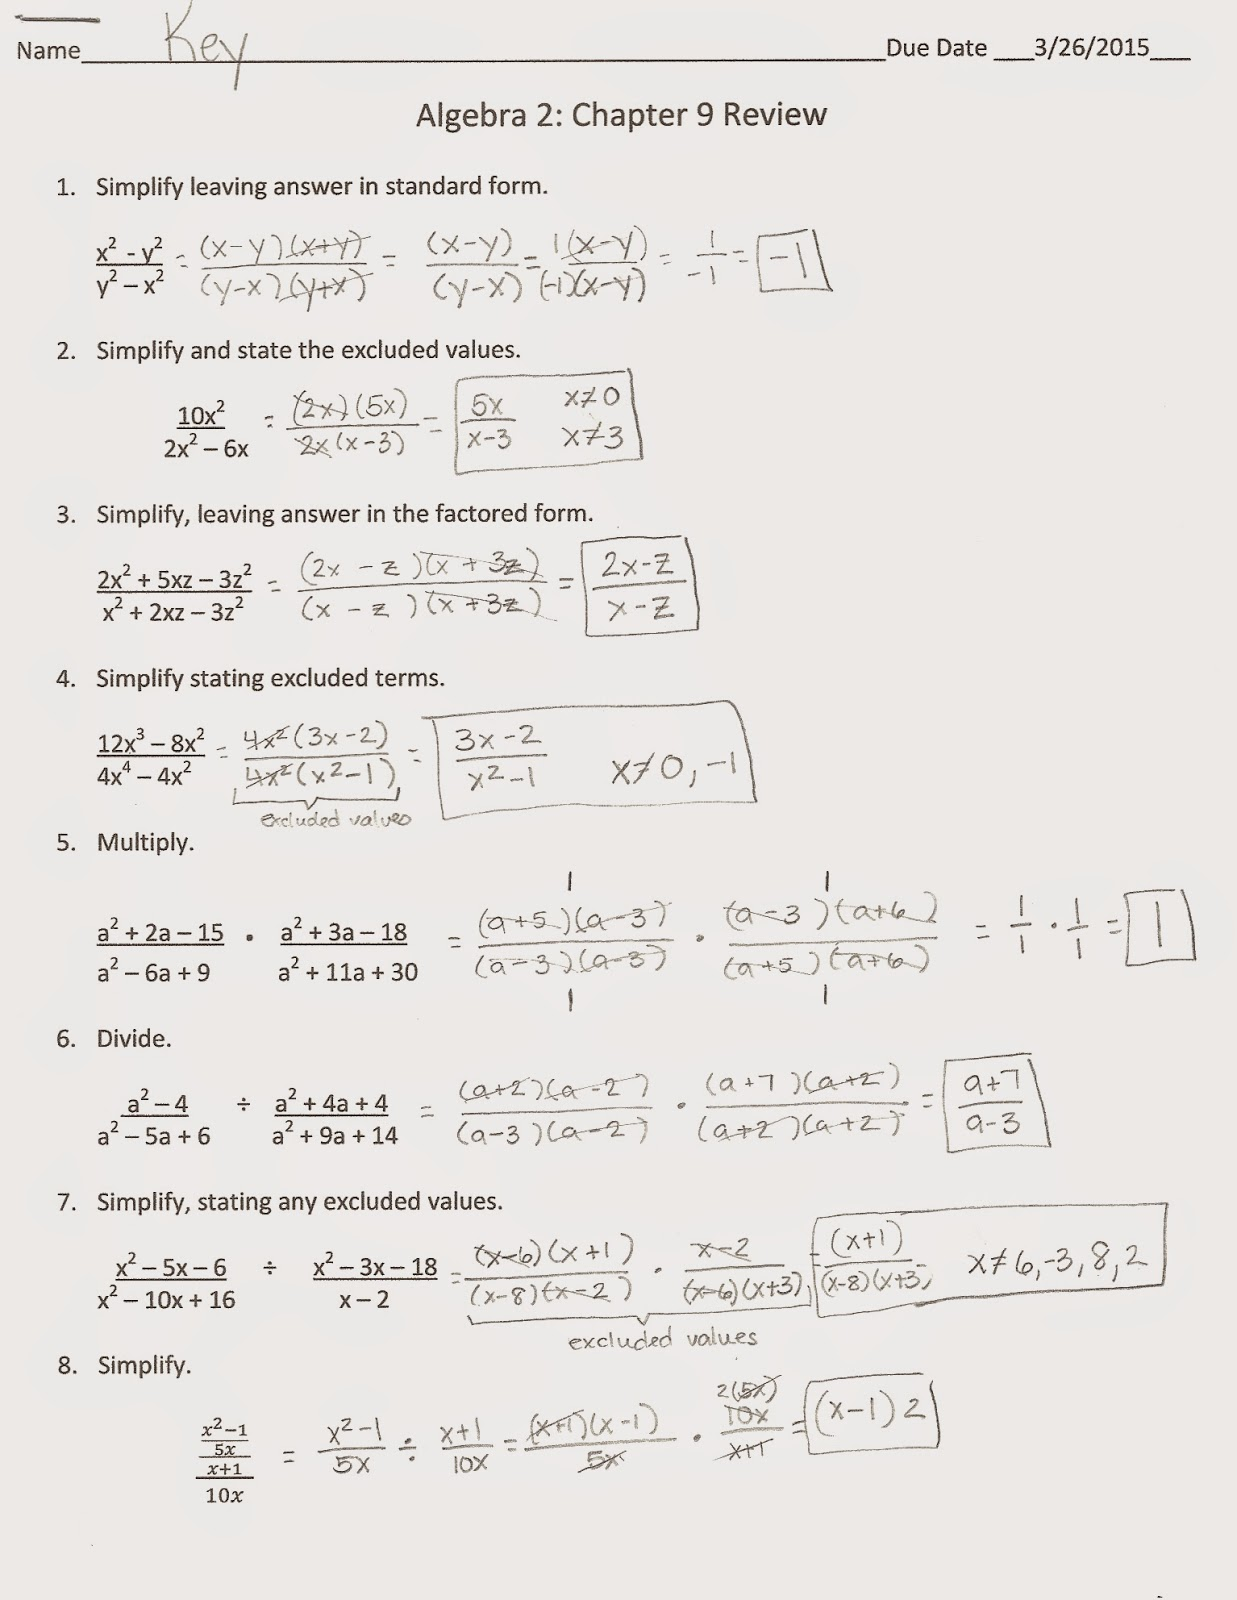 Printables Algebra 1 Review Worksheet algebra 1 review and practice html alerts 2 chapter 9 answers